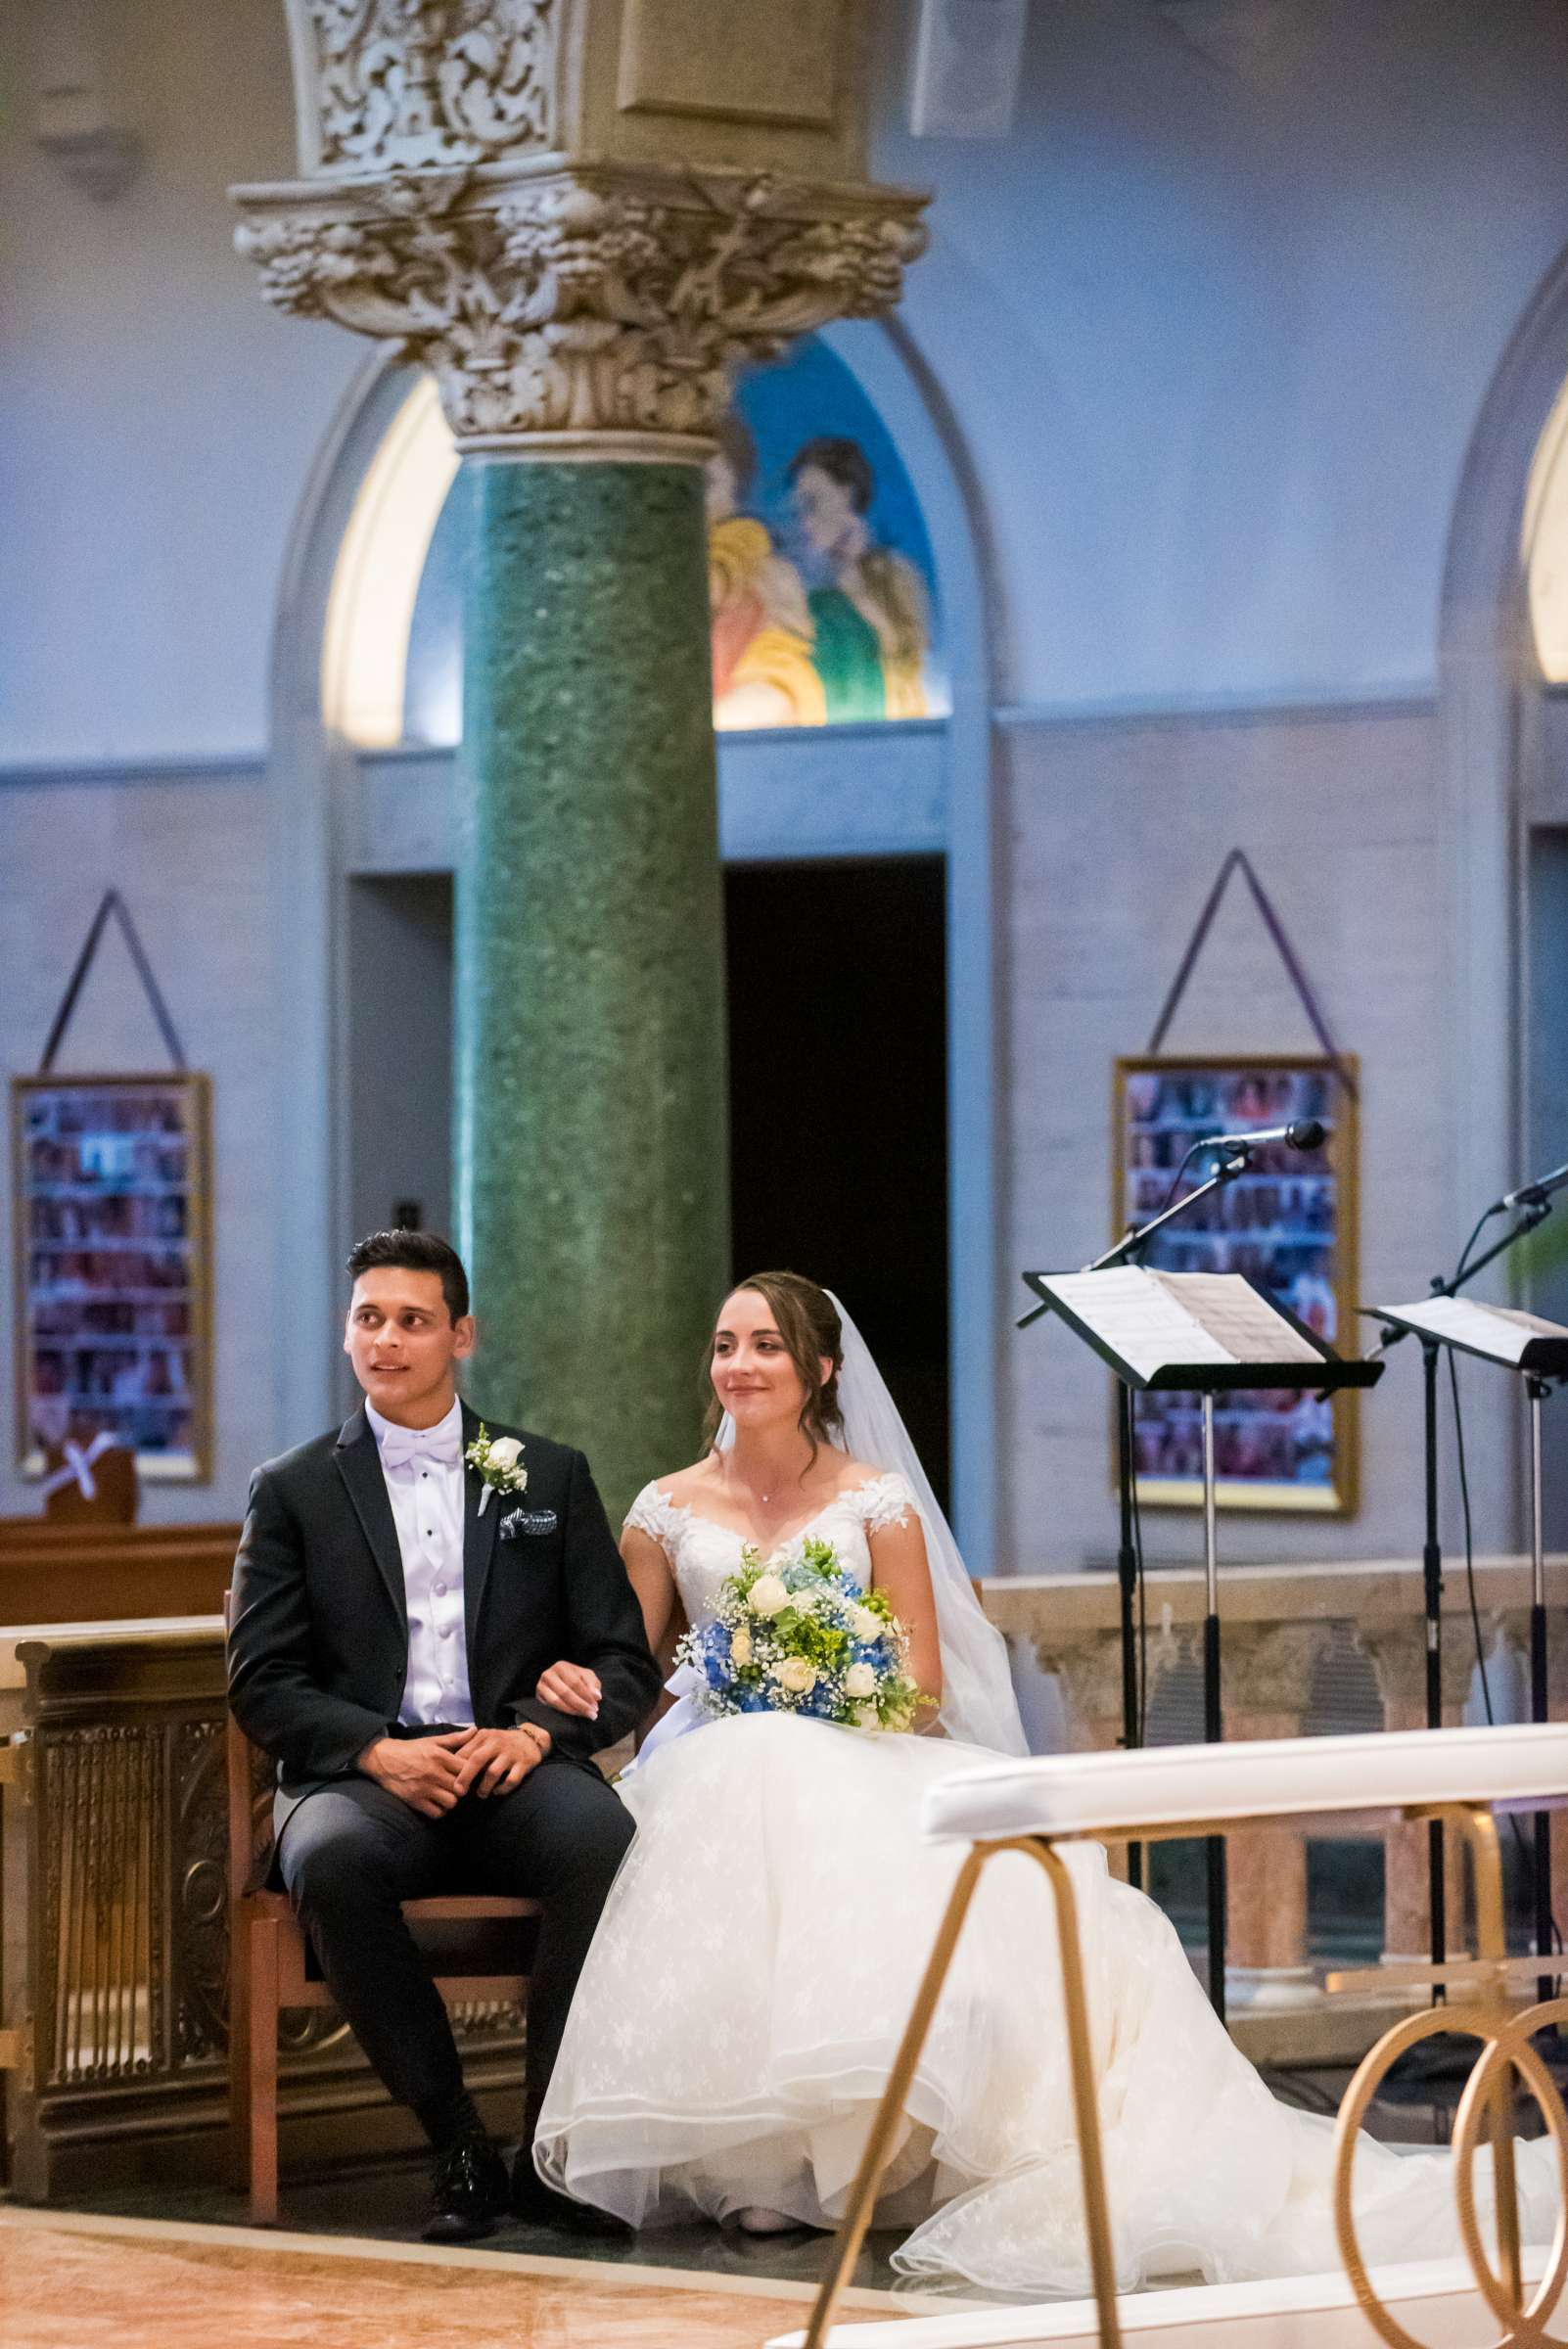 The Immaculata Wedding, Arianna and Jonah Wedding Photo #118 by True Photography